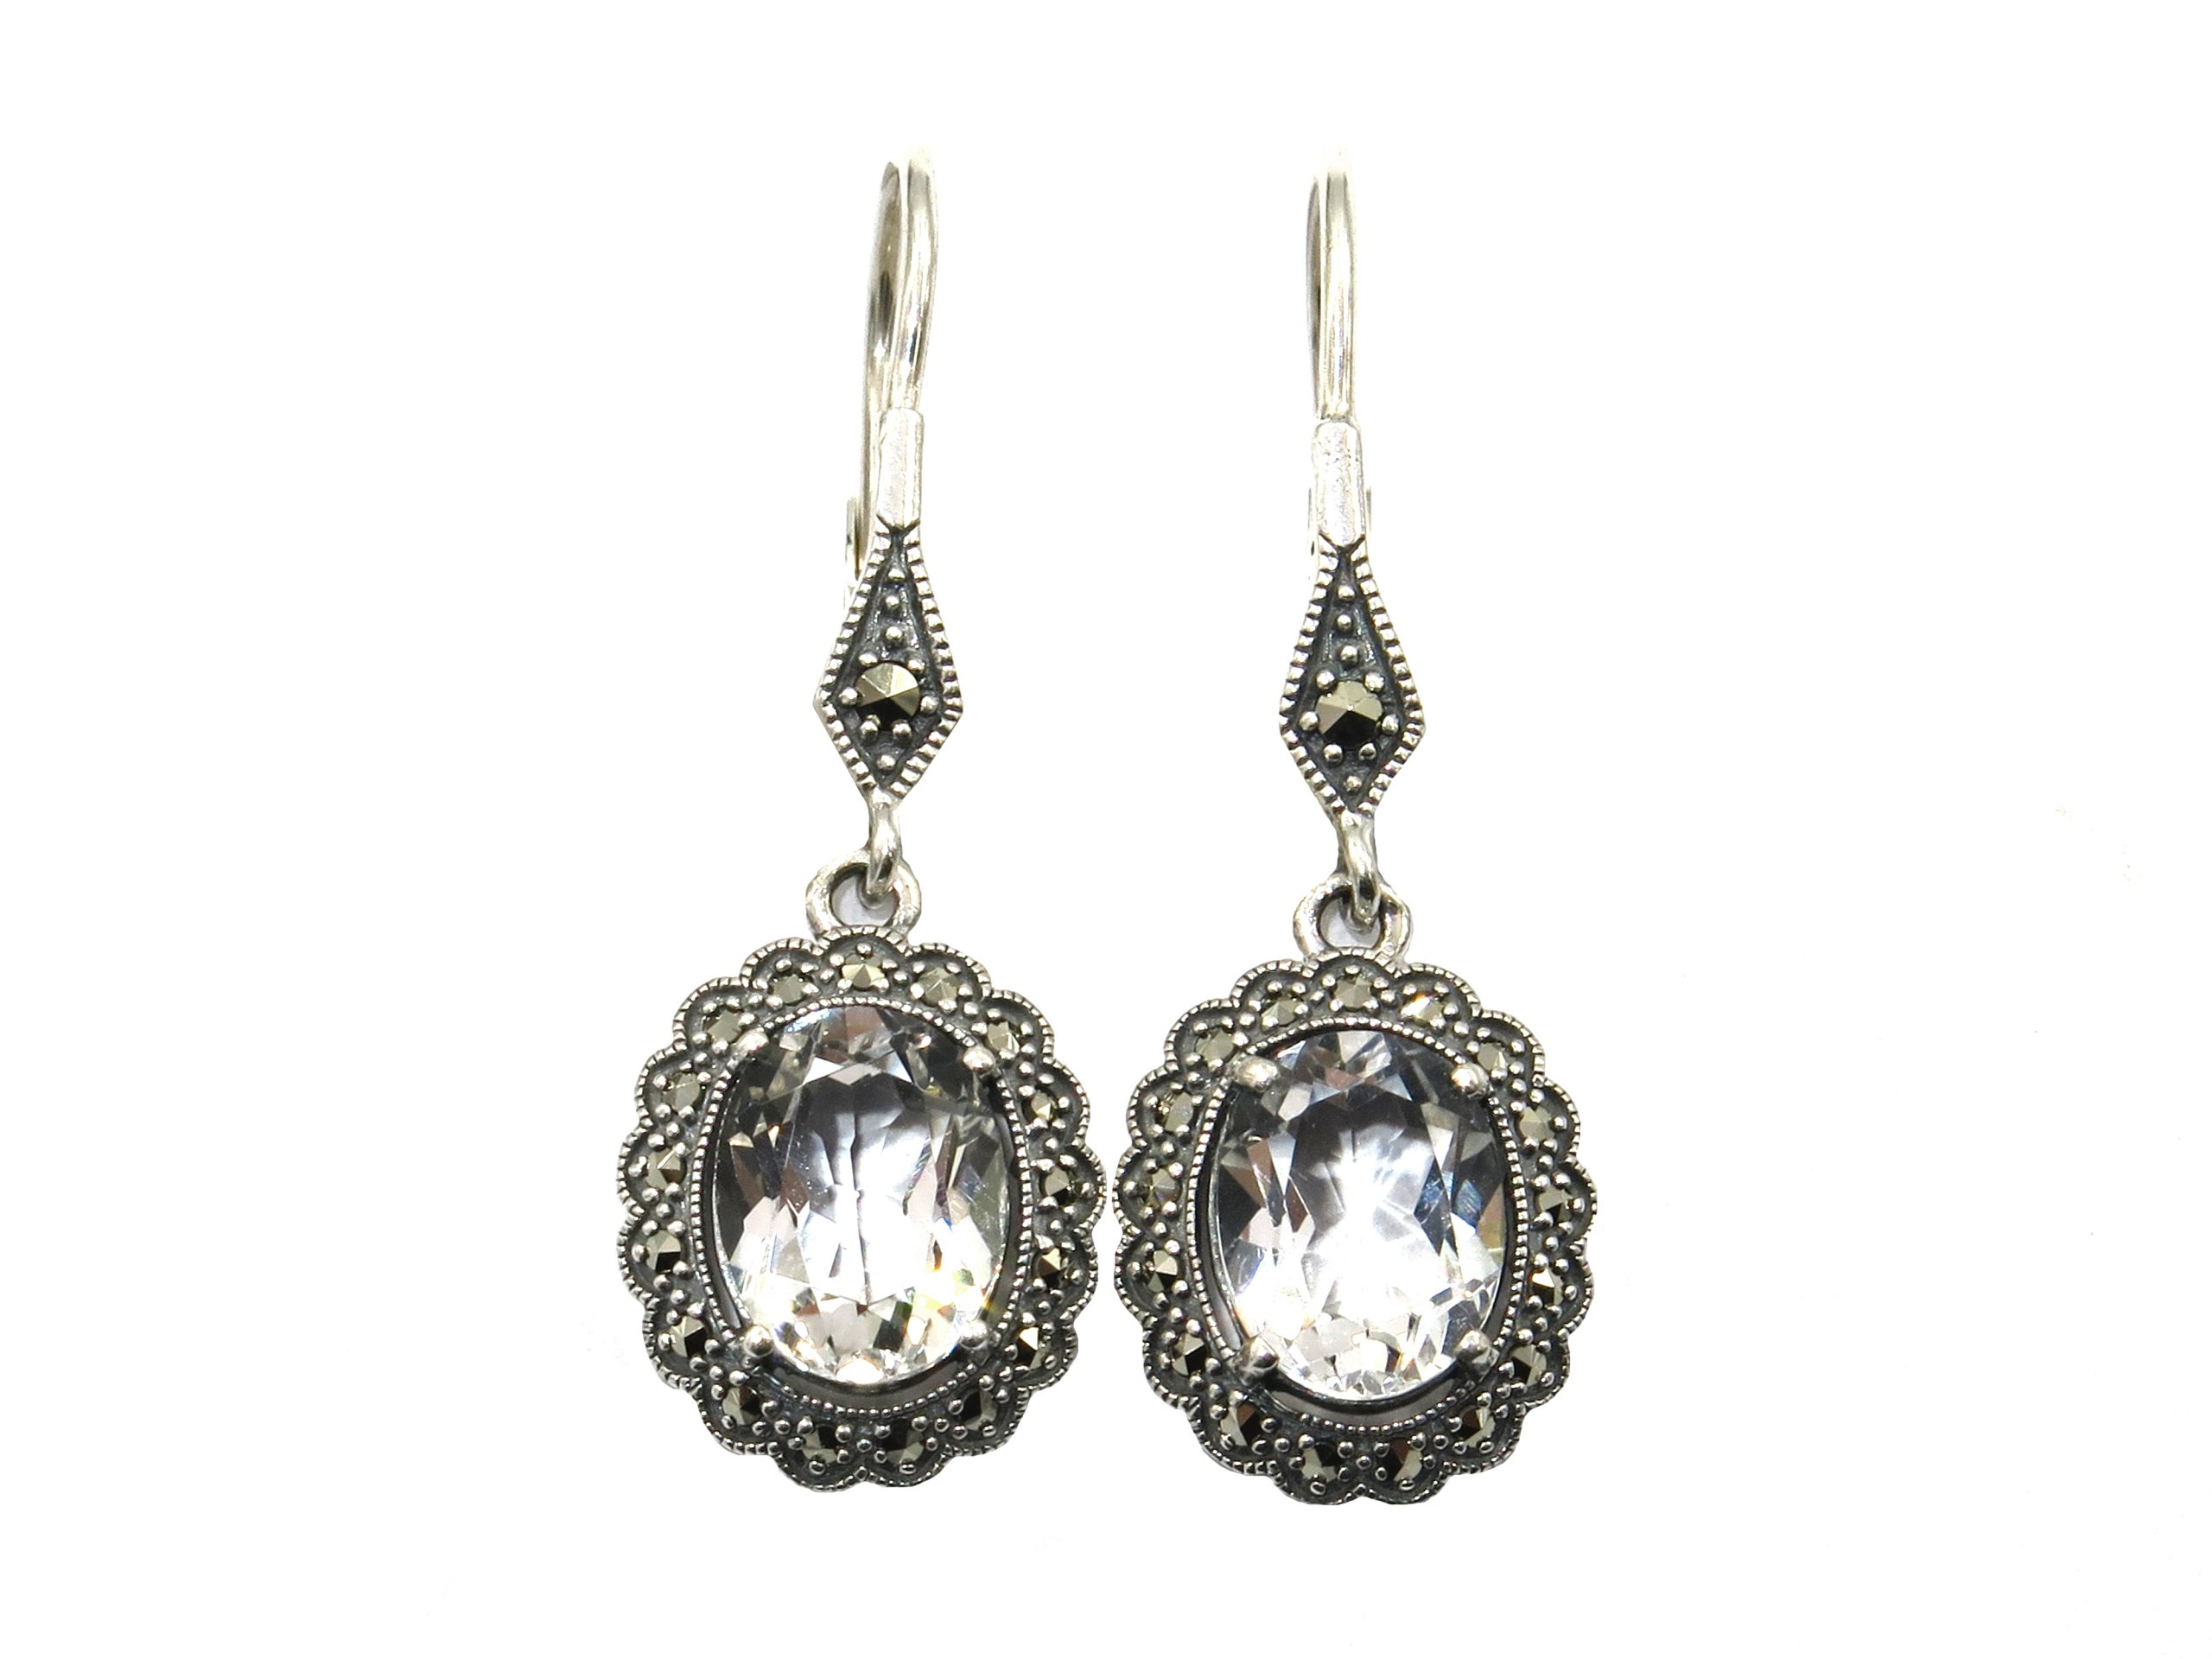 SILVER TOPAZ AND MARCASITE EARRINGS MJ24515